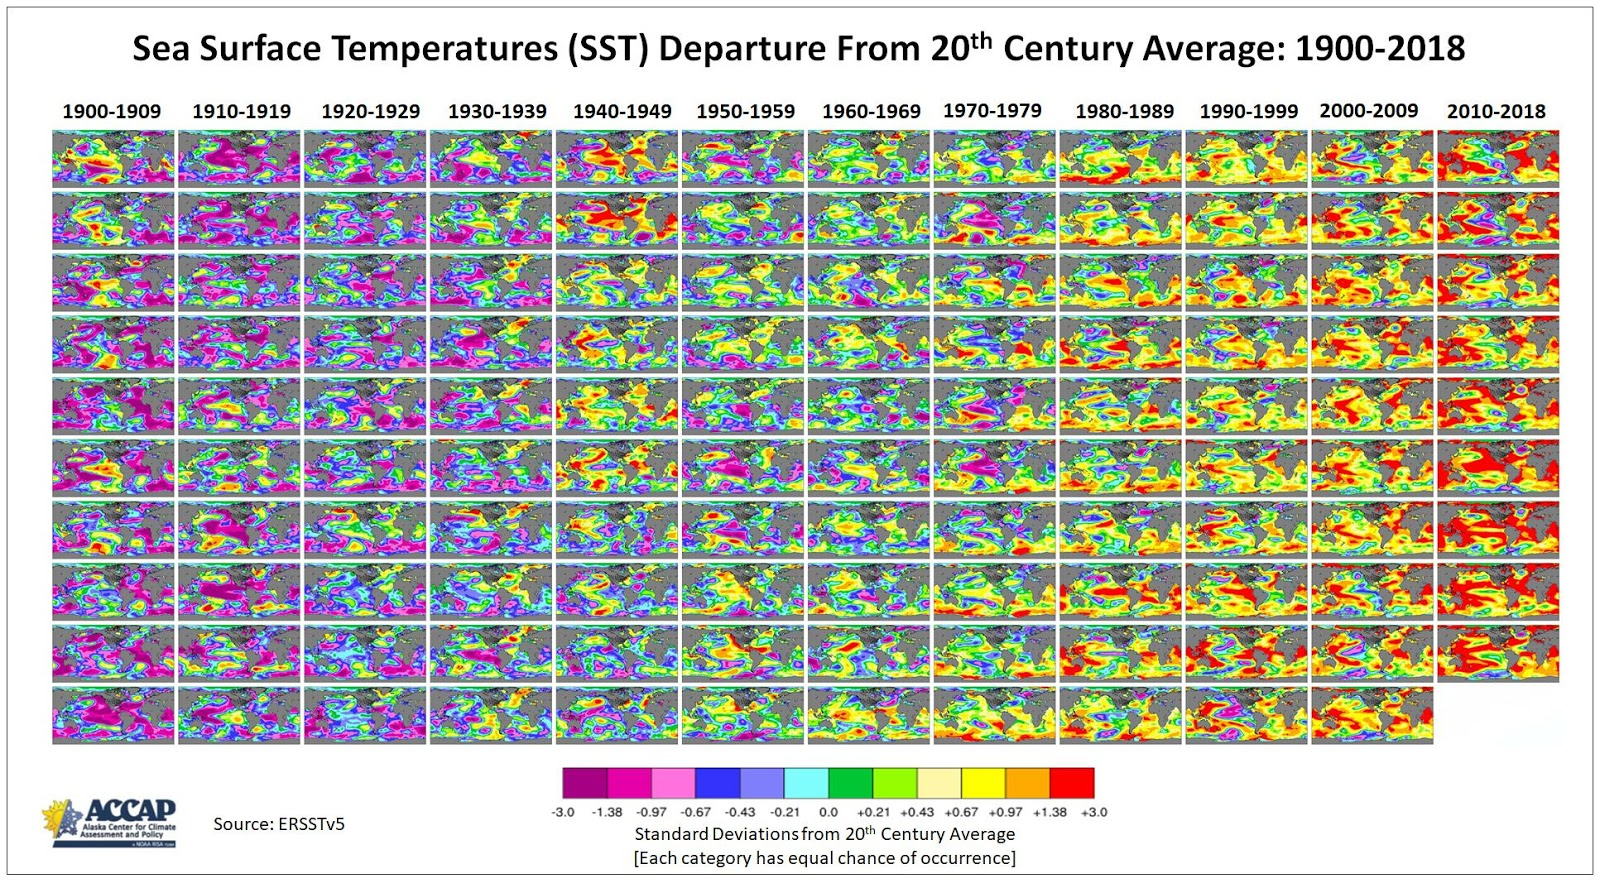 Sea Surface Temperatures Departure From 20th Century Average (1900 - 2018)